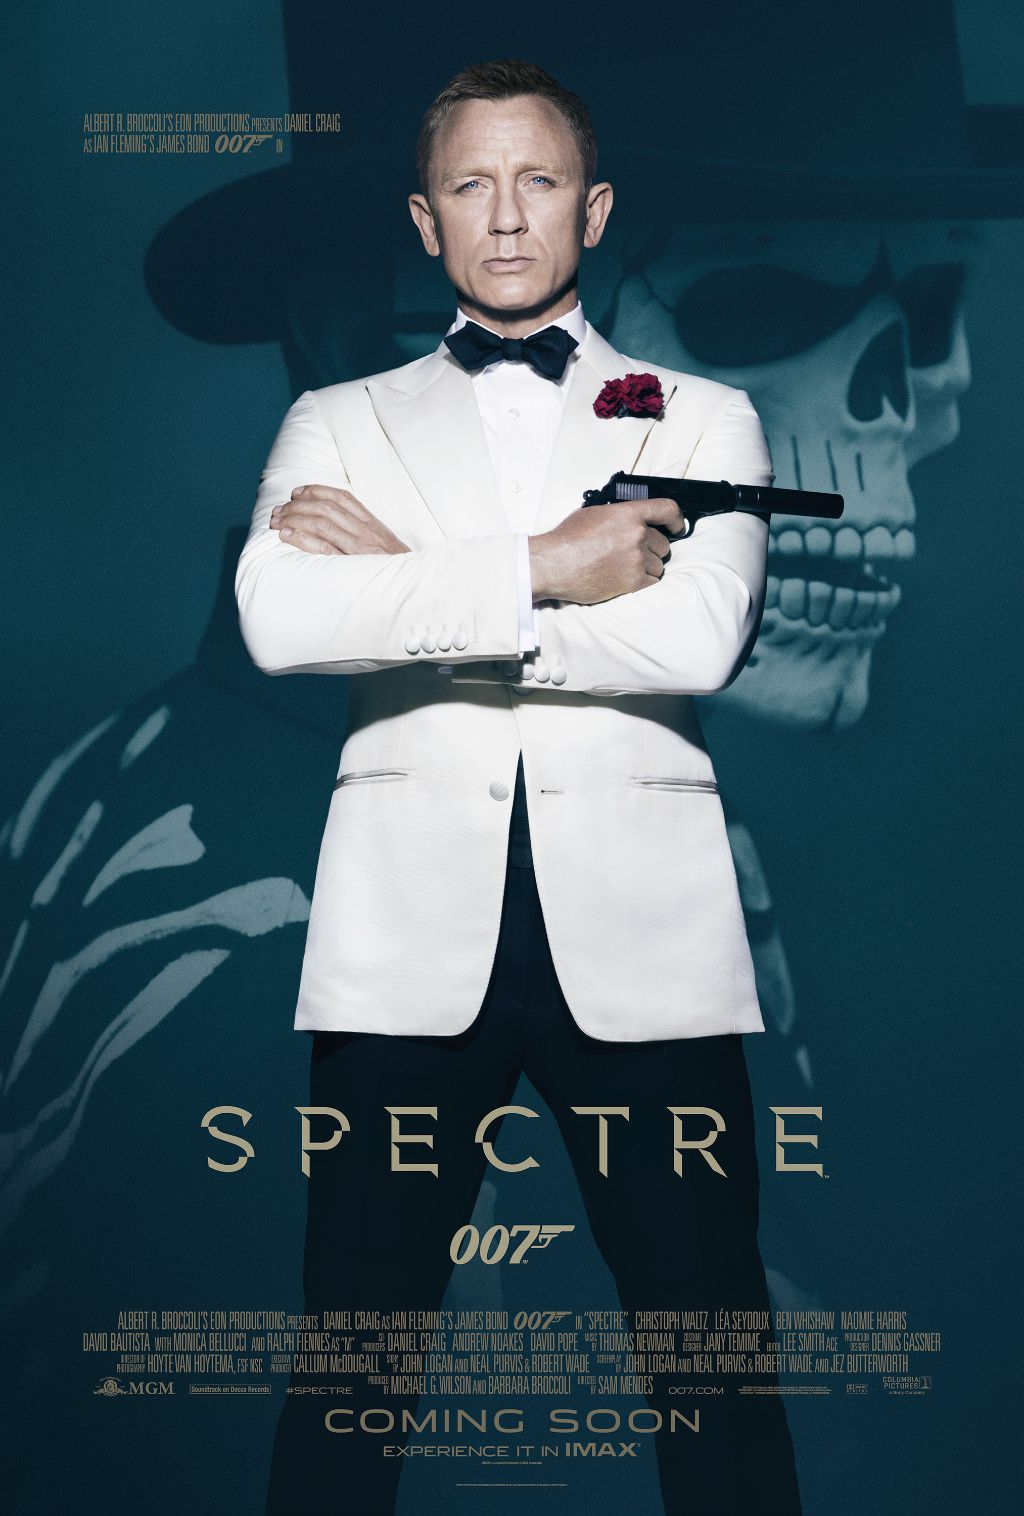 UK TV premiere of 'Spectre' on New Year's Day